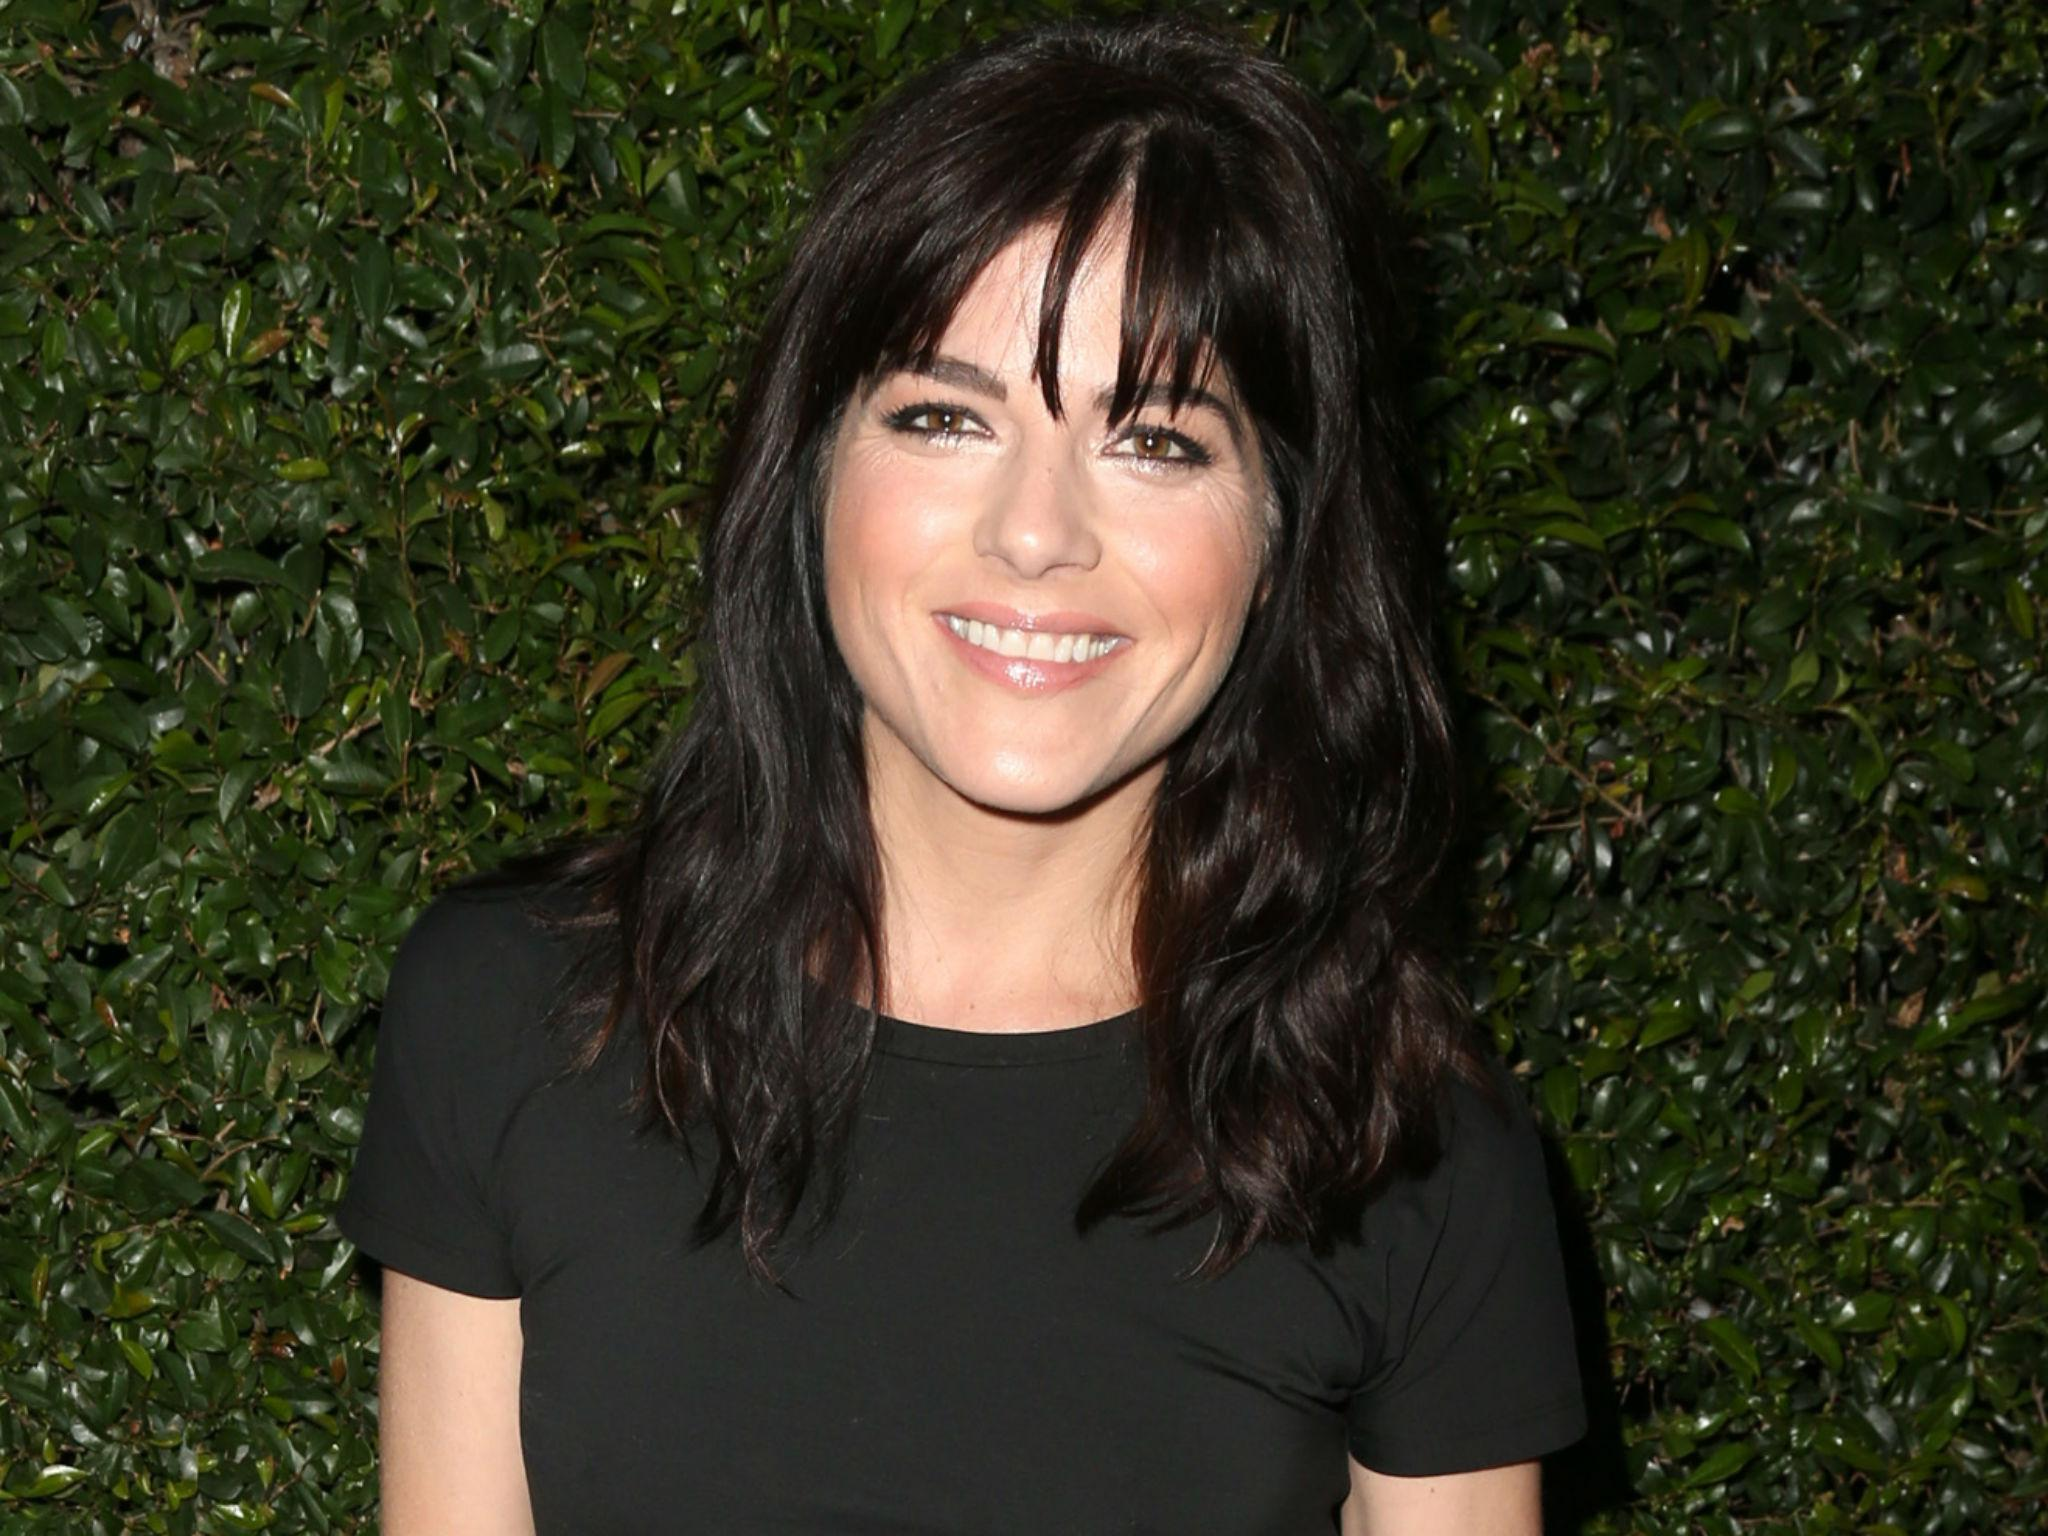 Selma Blair Apologises For Plane Incident: 'I Am A Flawed Human Being Who Makes Mistakes